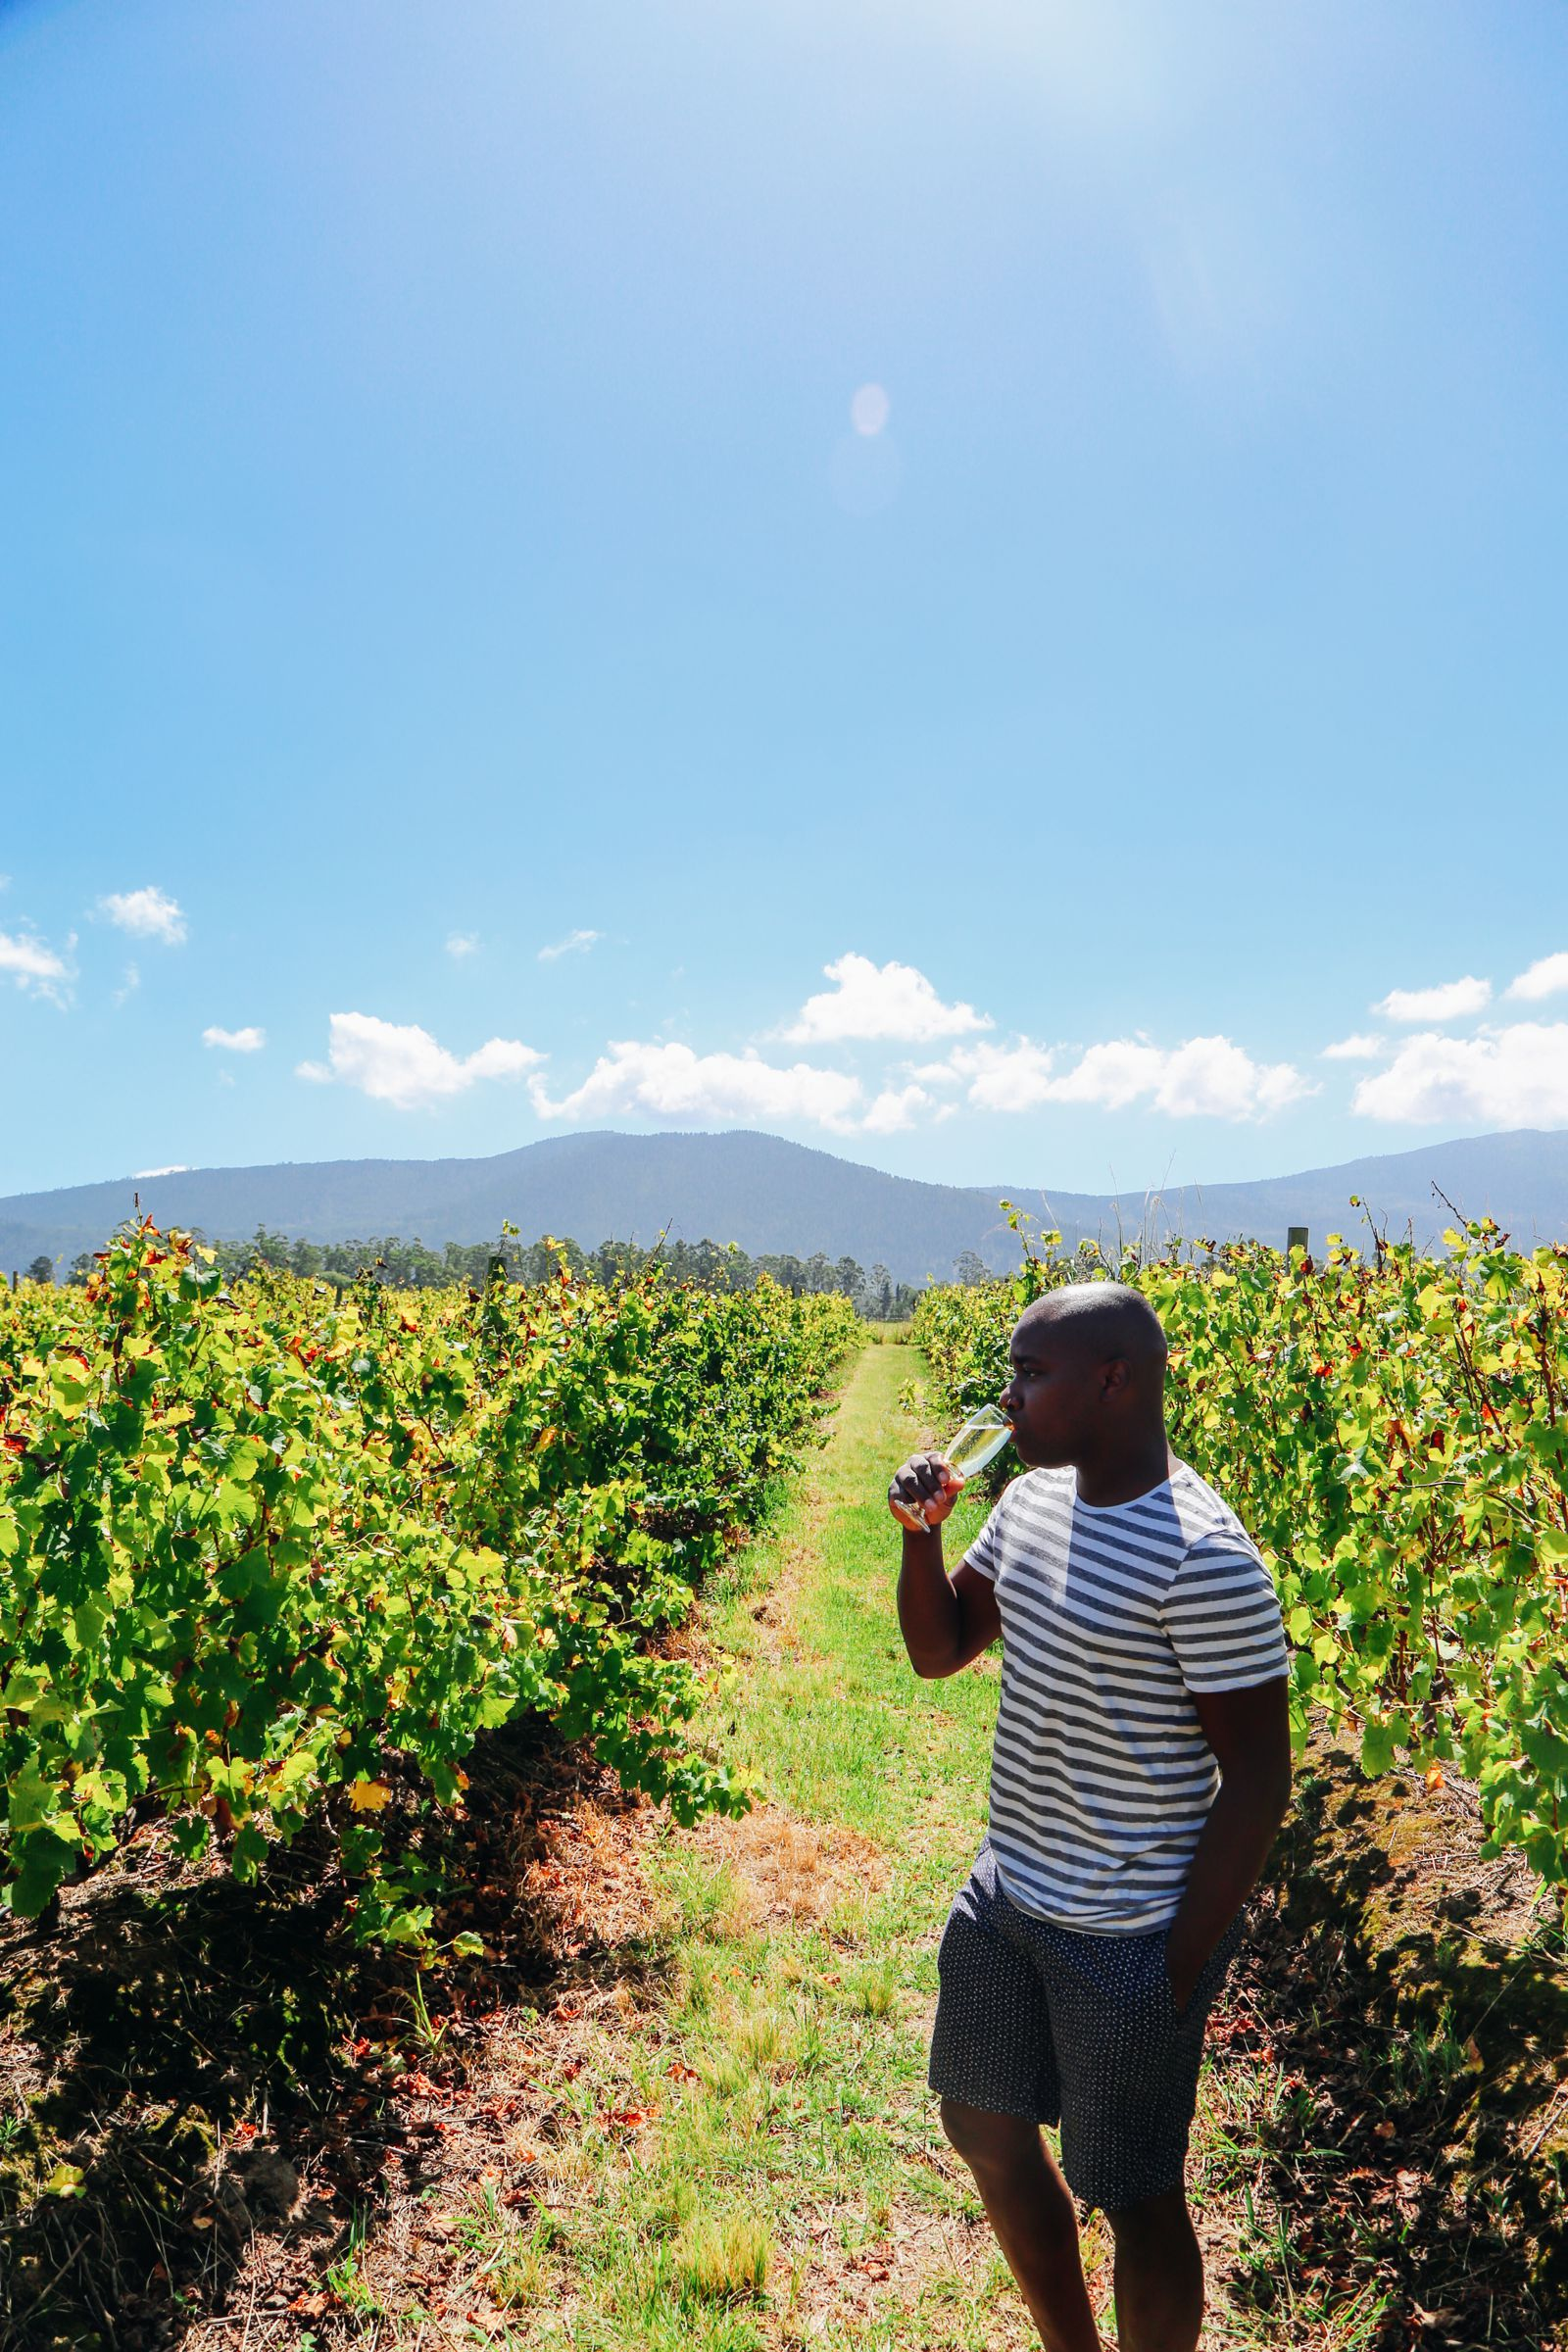 Eastern Cape Adventures In South Africa: Wines, 1,000 Year Old Trees And The Tallest Bungee In The World! (28)